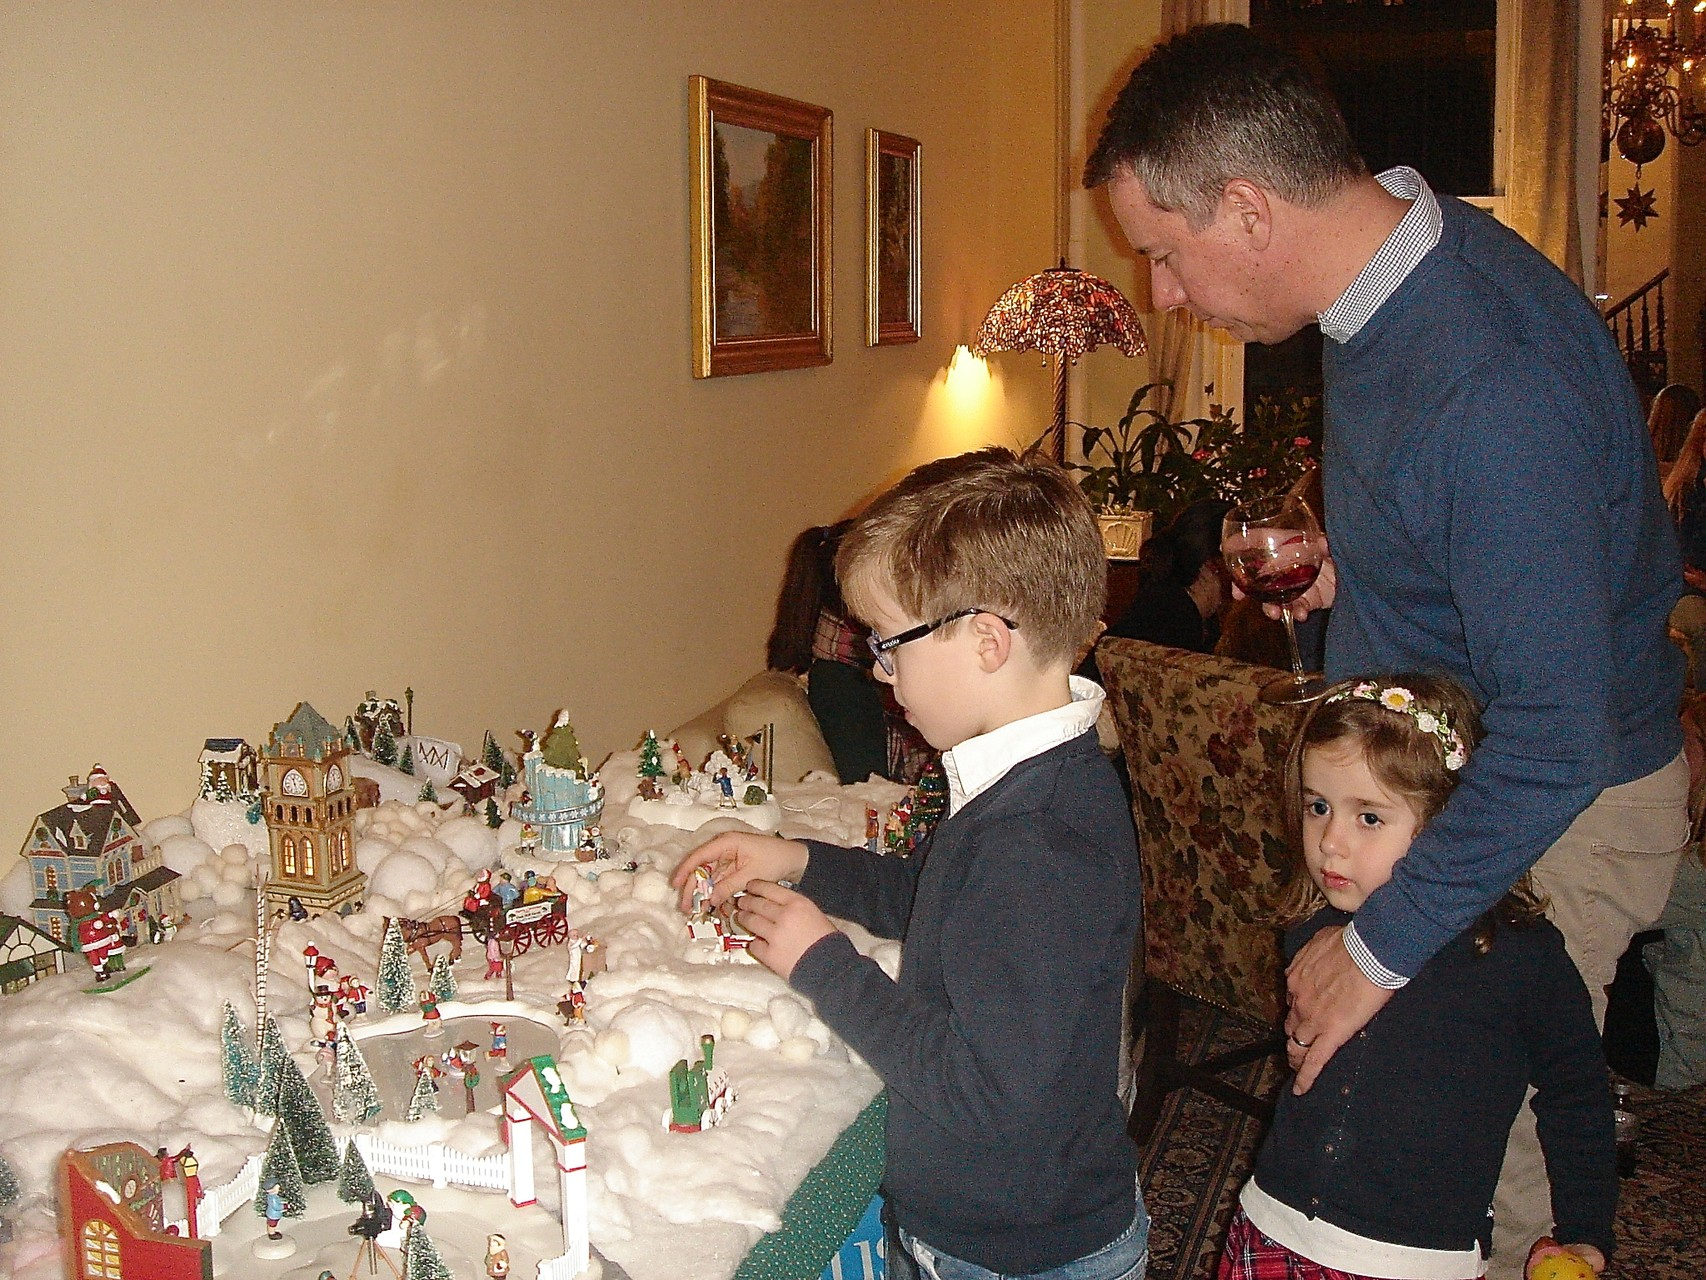 Jon Boylan with children Alexandre and Charlotte look at the Xmas village